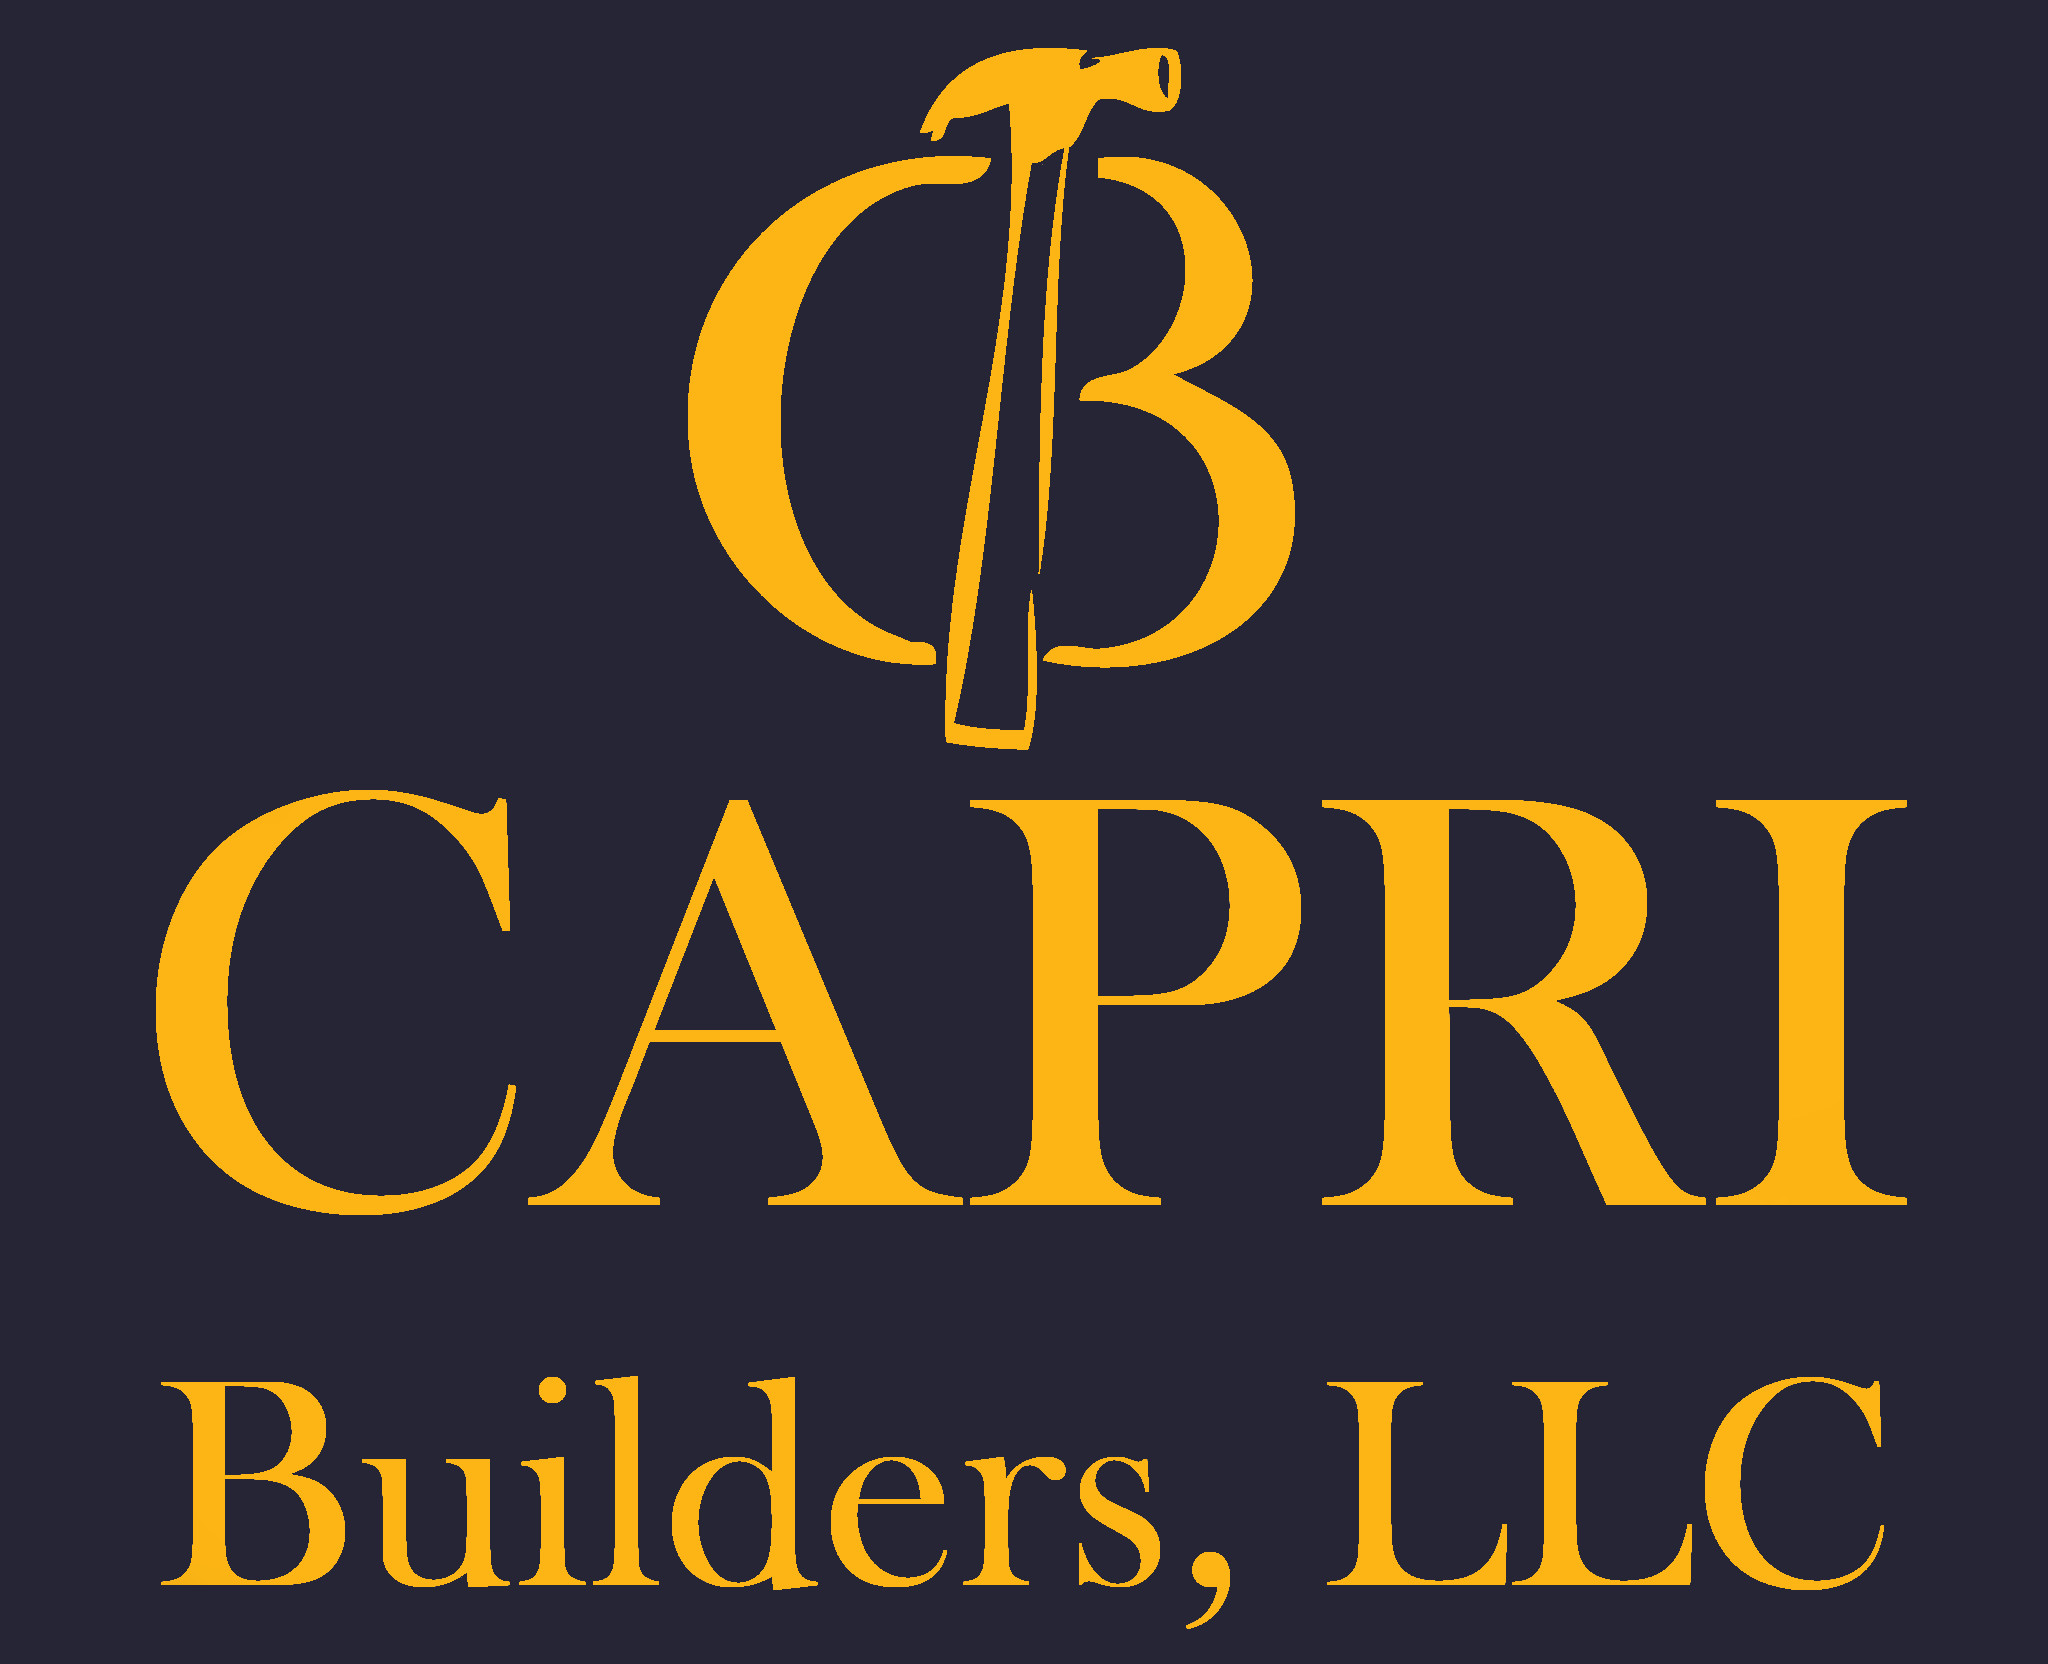 Capri Builders, LLC